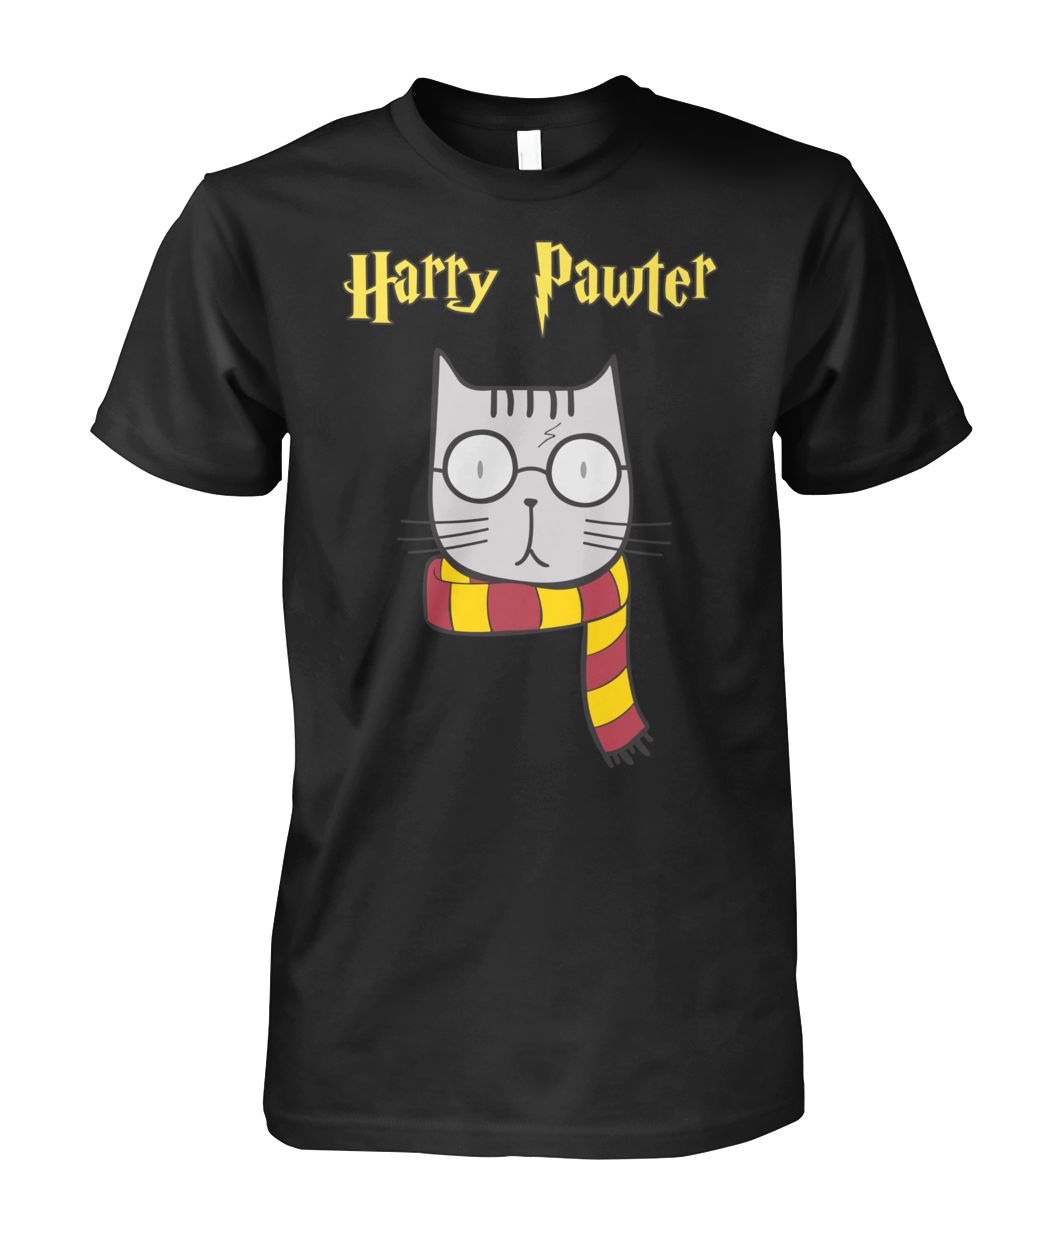 Harry Pawter Cat with Glasses unisex shirt